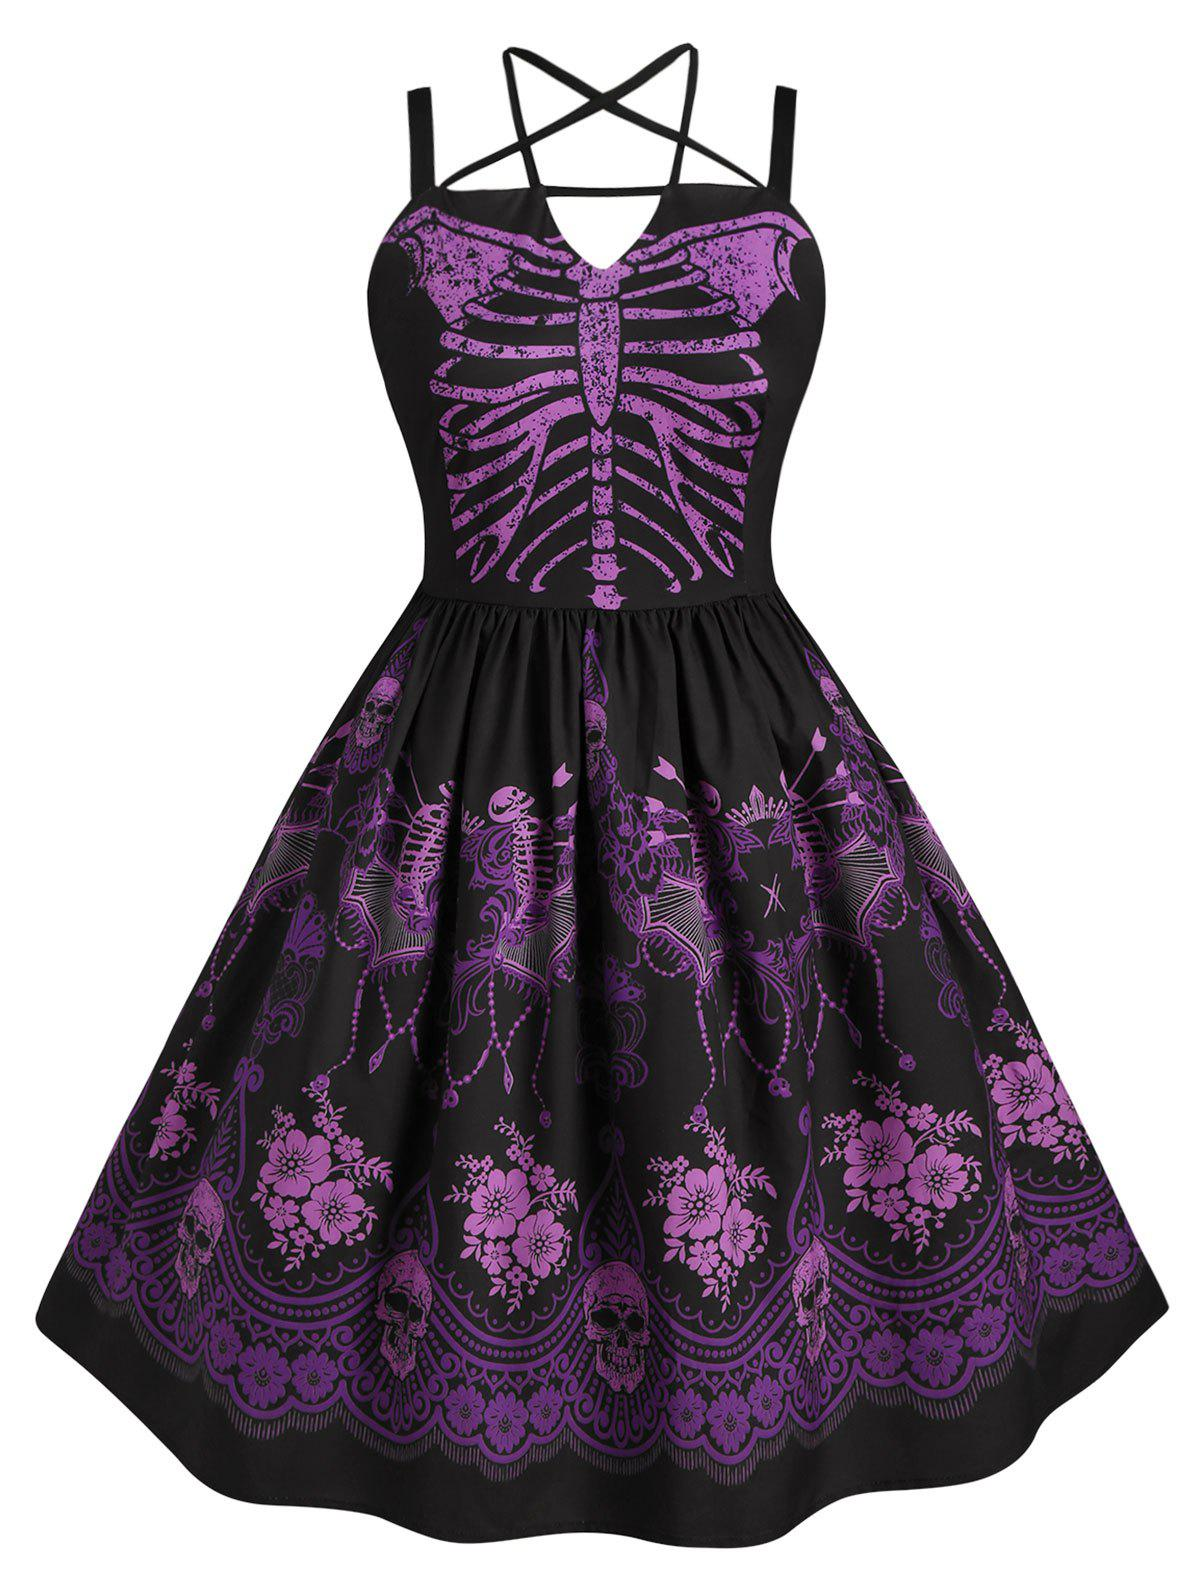 Affordable Skeleton Print Harness Criss Cross Halloween Plus Size Dress